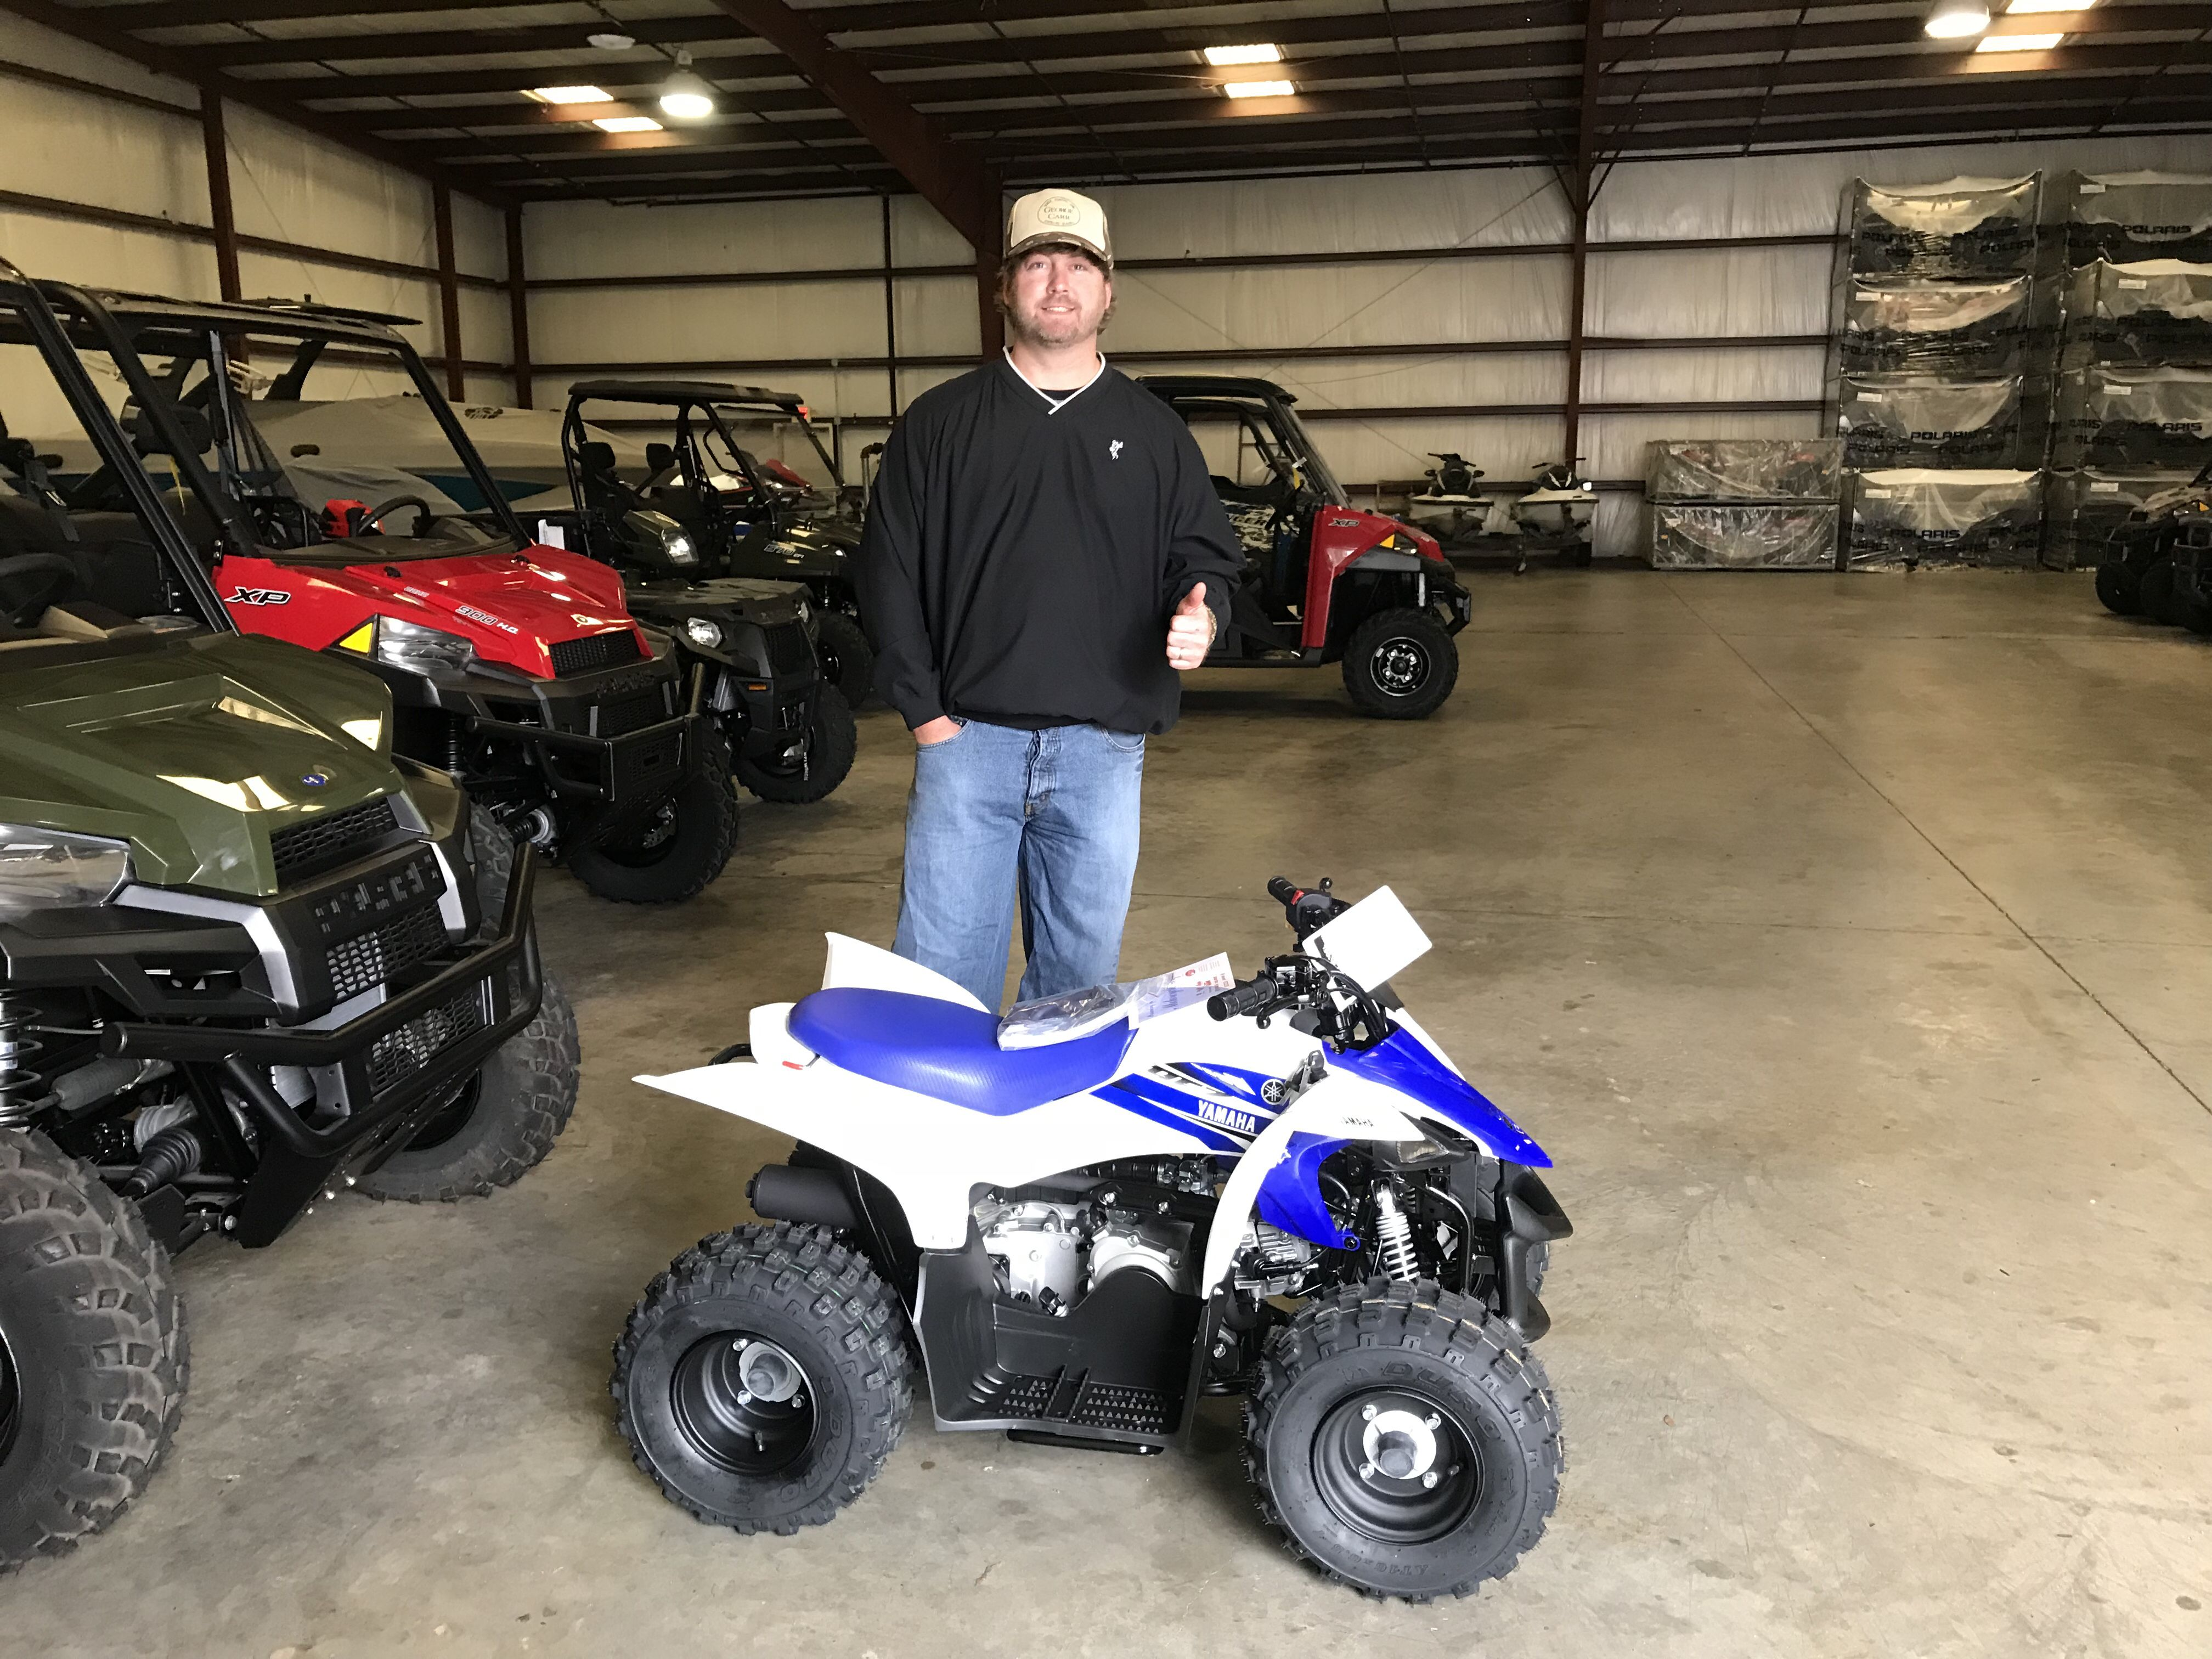 Congratulations to Brandon Carr from Vicksburg, MS for